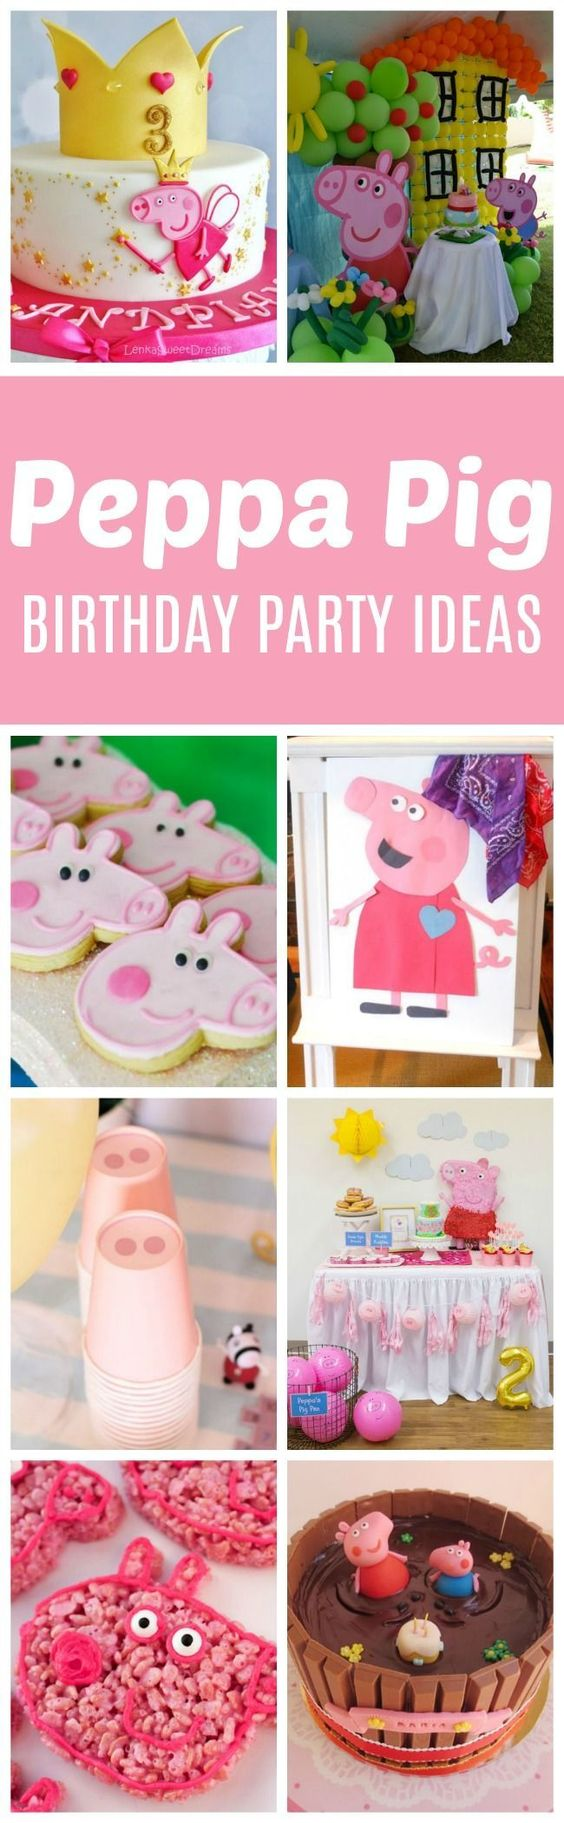 decor ideas on new decorations of pinterest best about pig peppa party